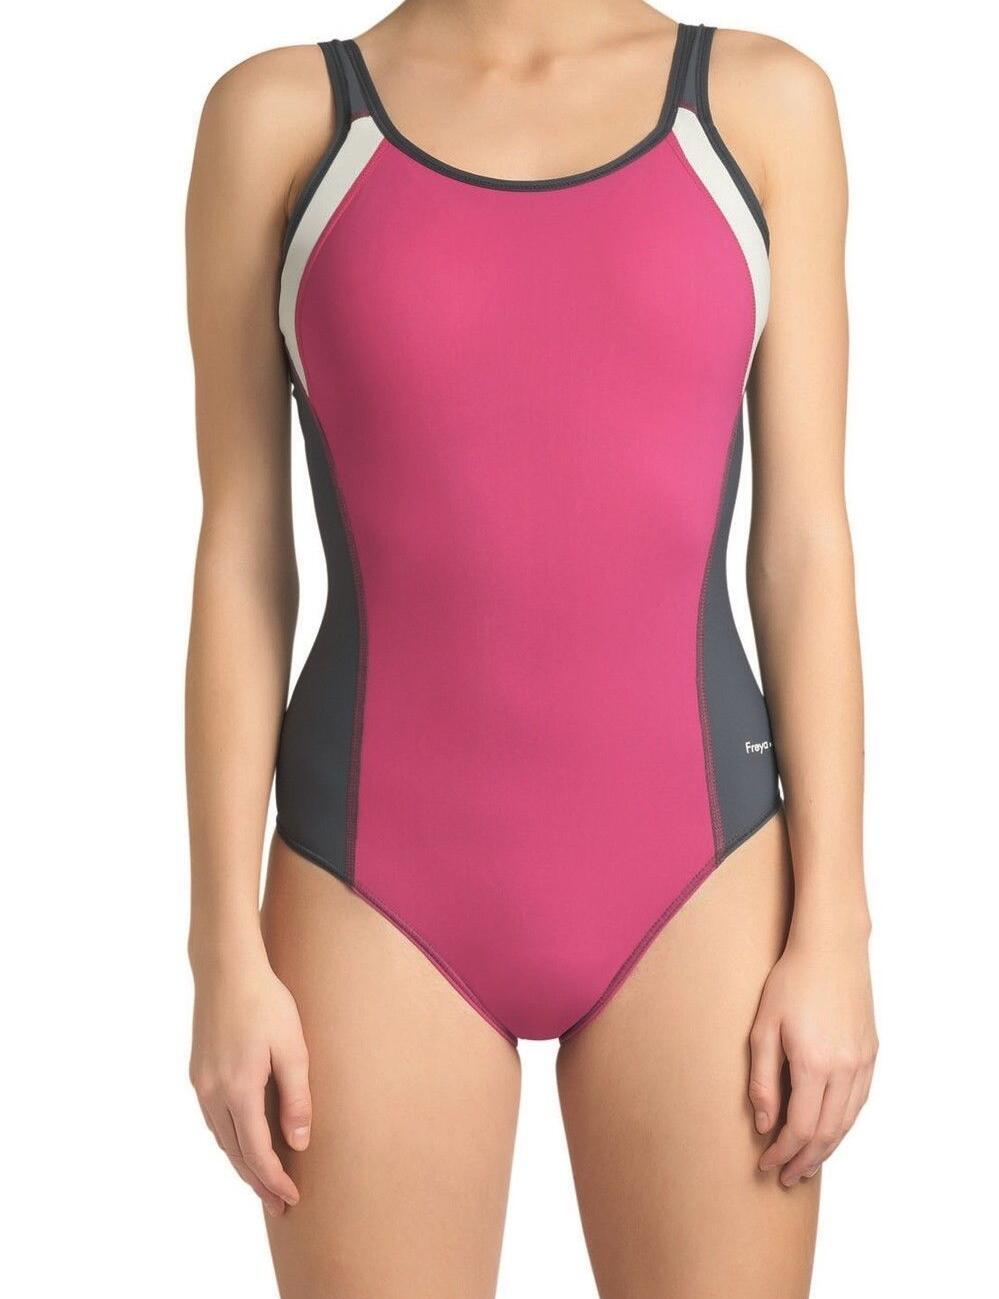 Freya 3991 Active Underwired Moulded Swimsuit Sports